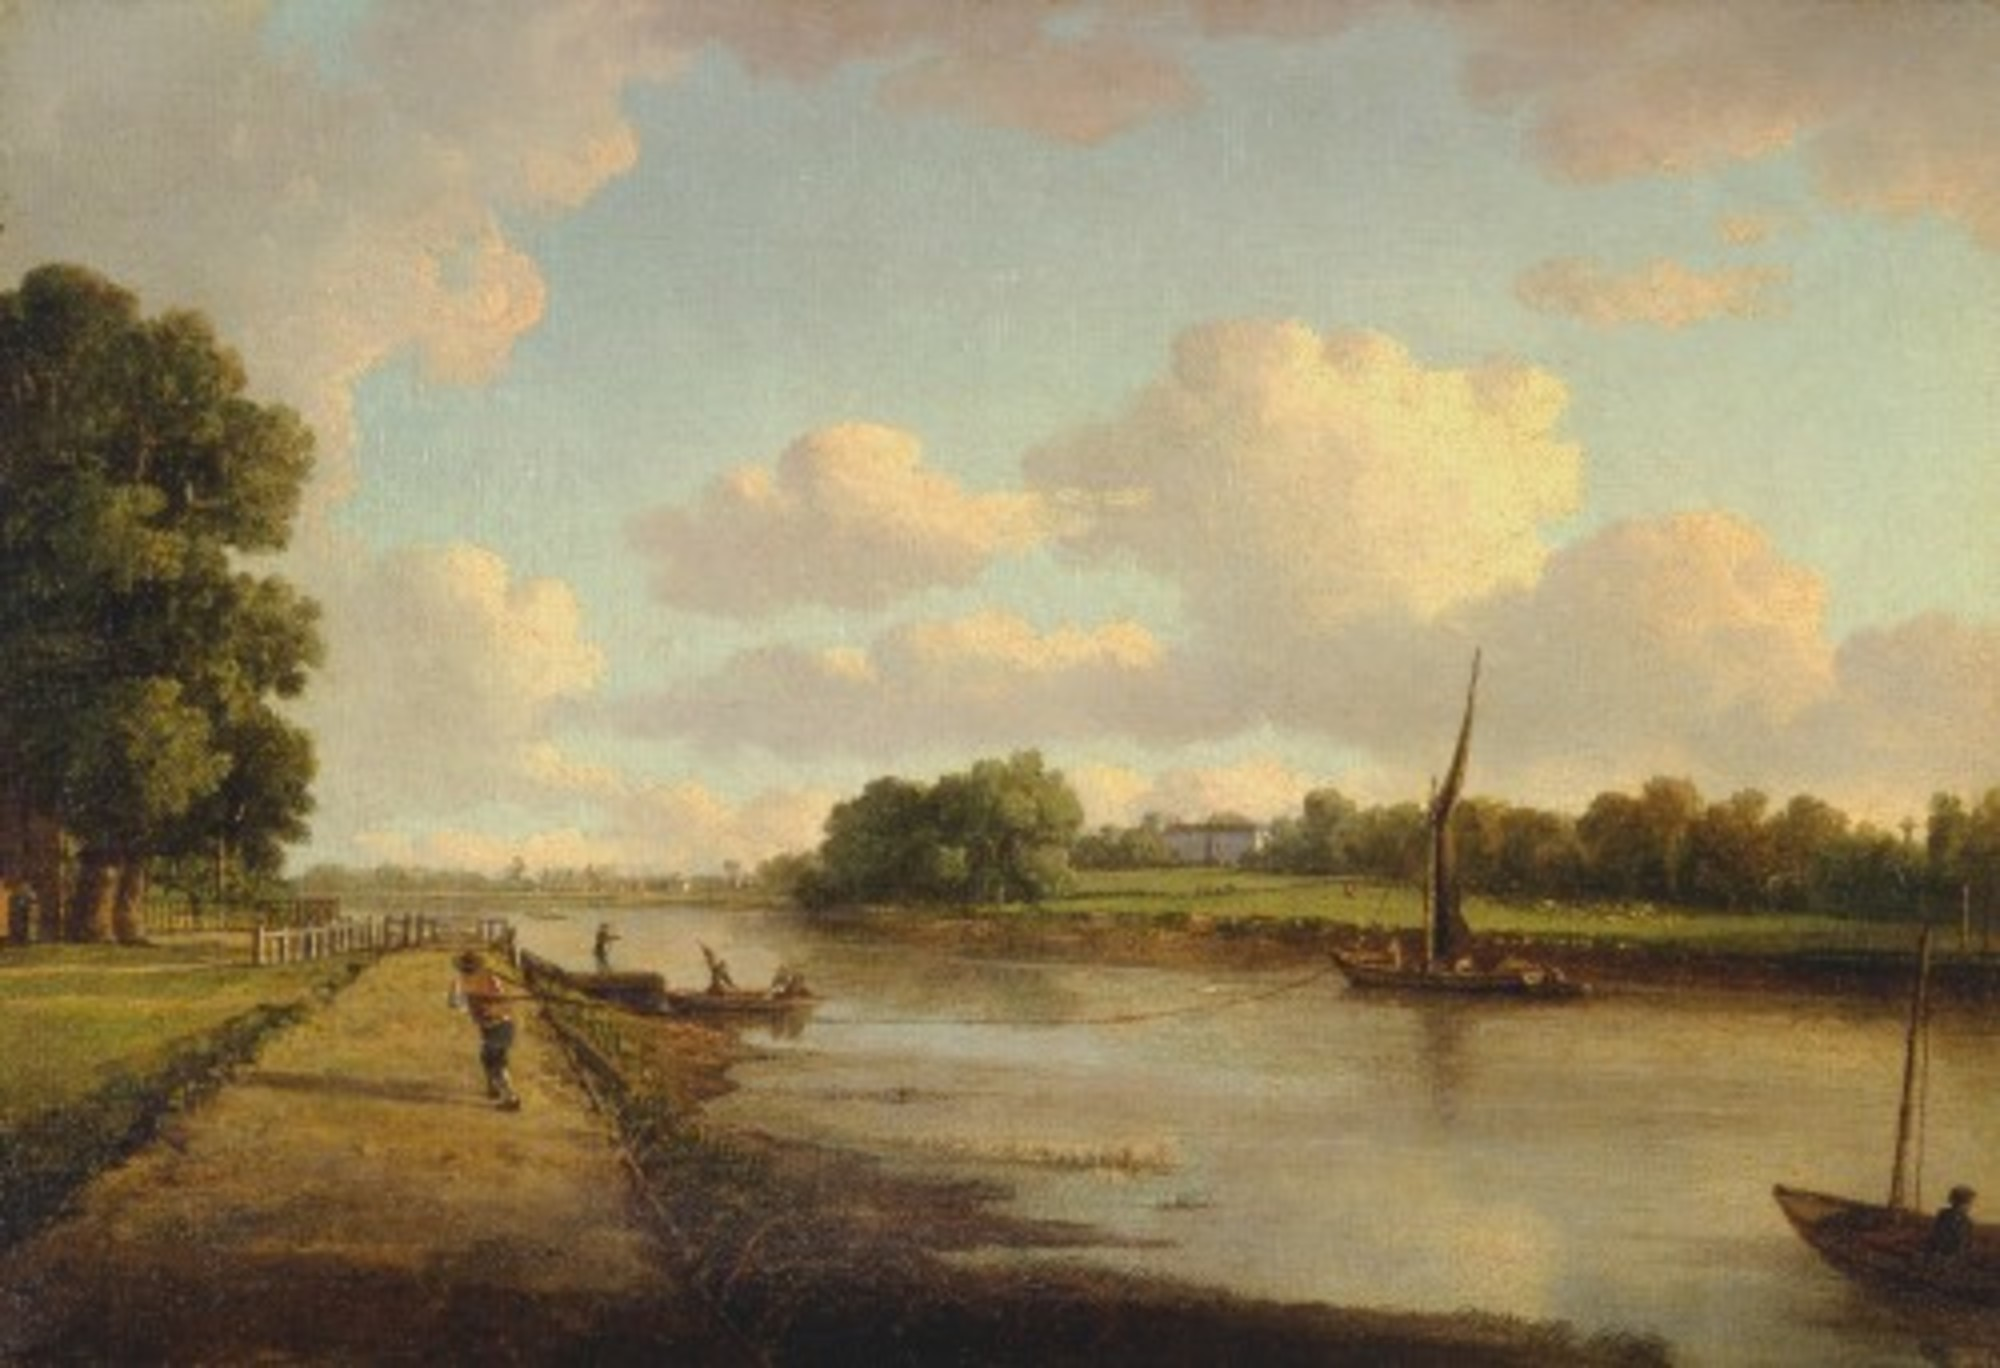 William-Marlow---View-on-the-River-Thames-at-Richmond---Google-Art-Project.jpg